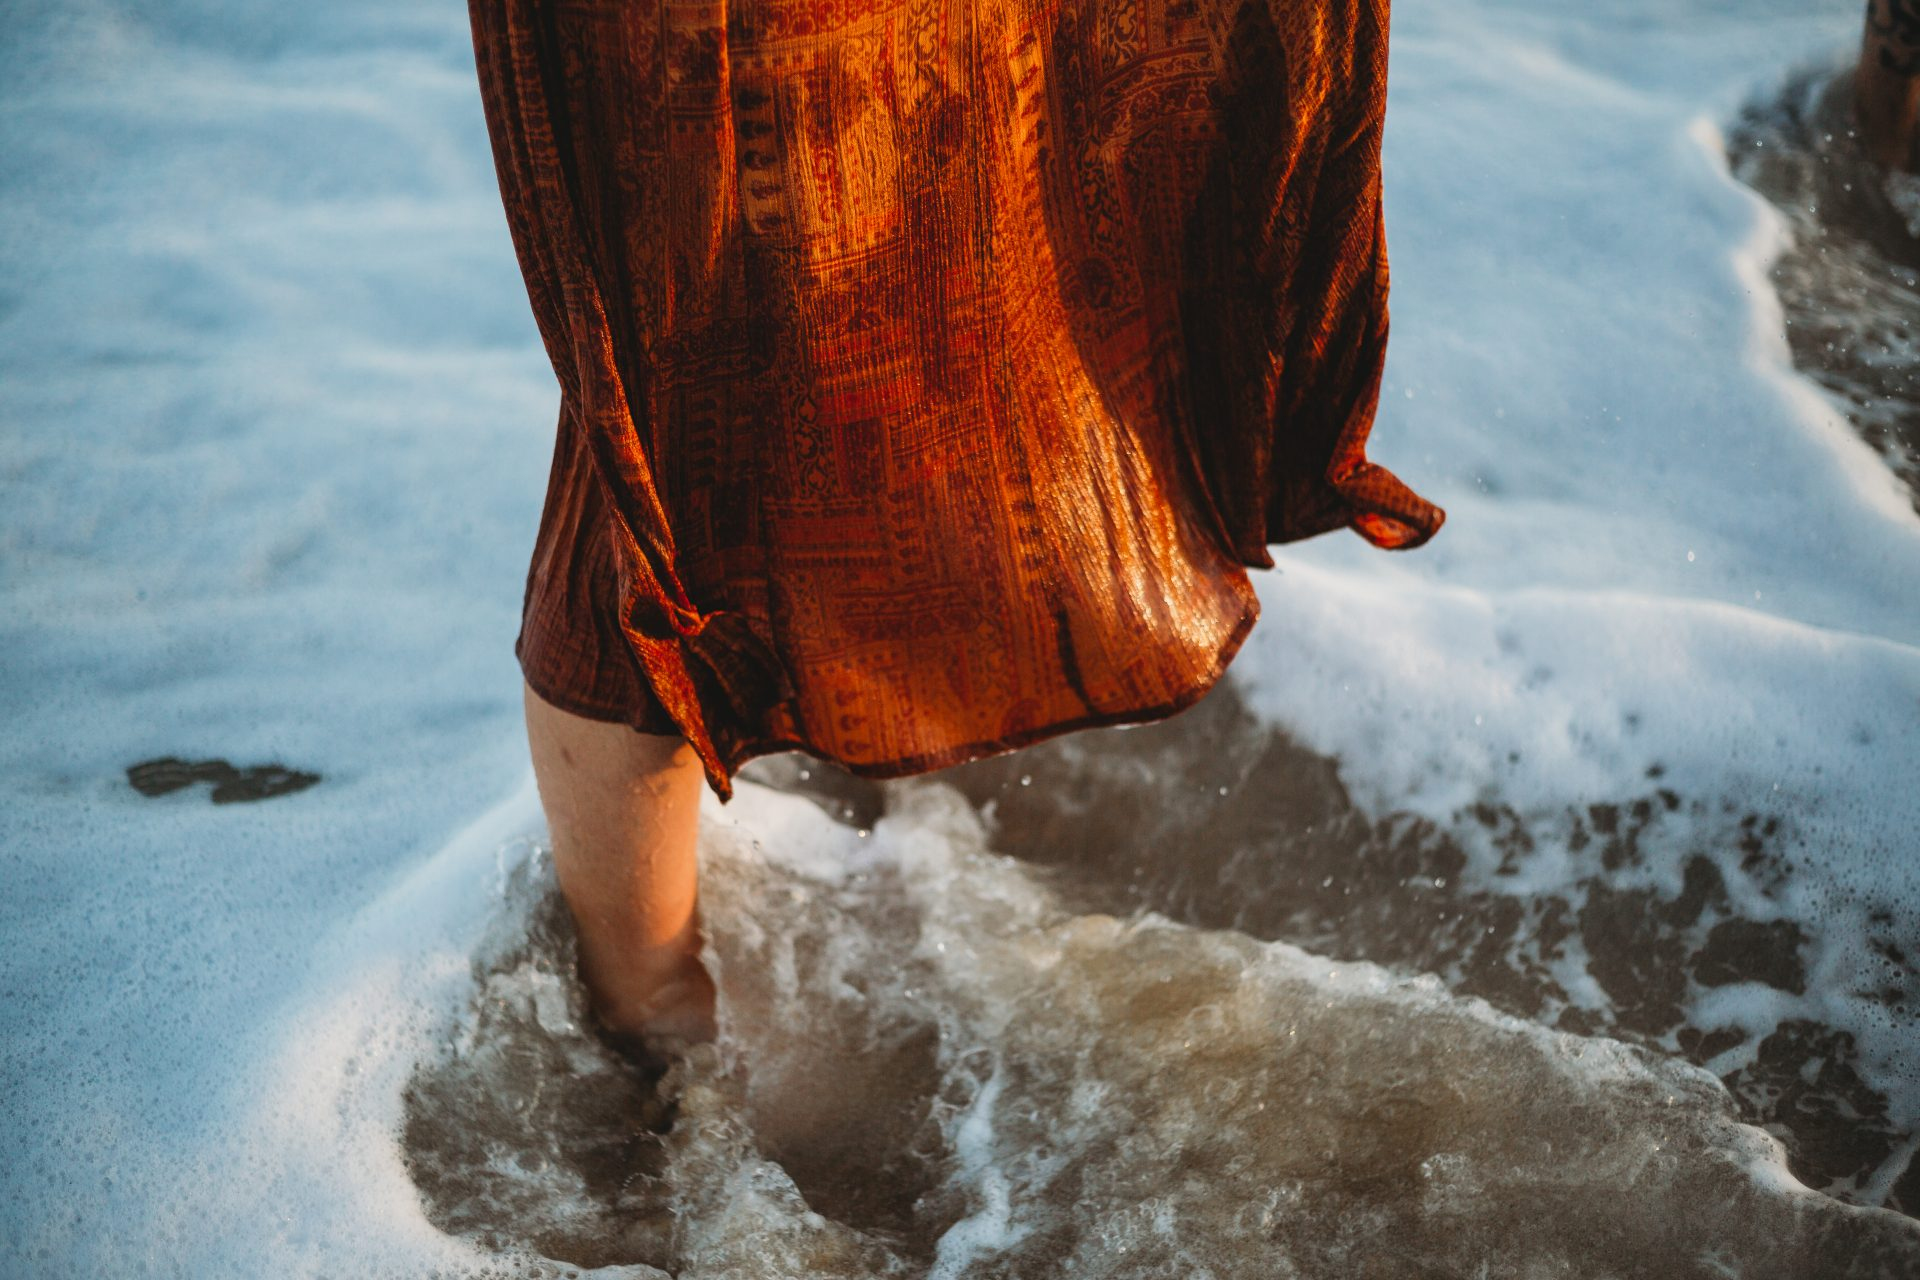 A woman's feet in the water at the beach as her orange dress floats in the wind around her ankles